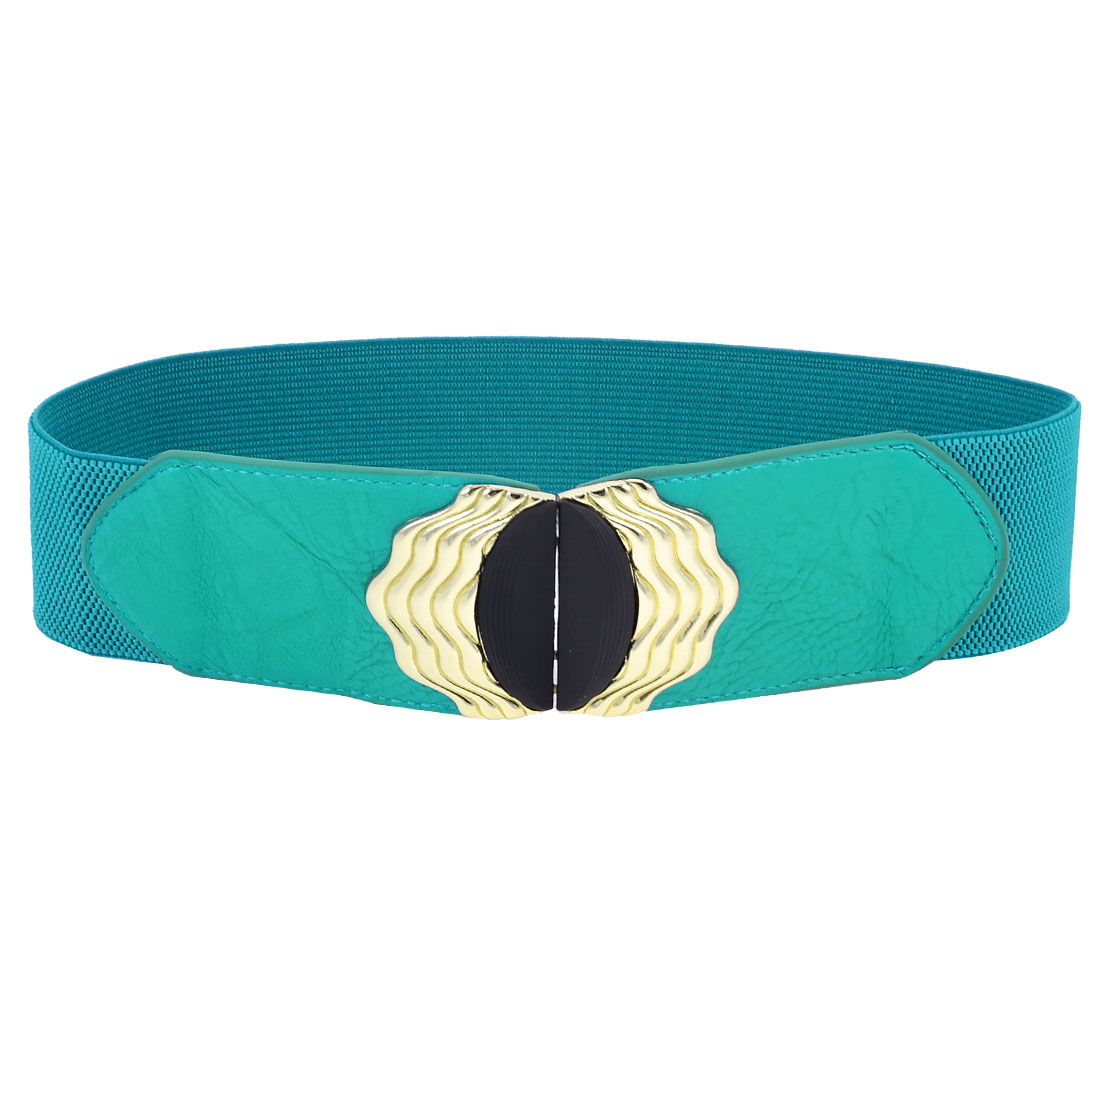 Interlocking Buckle 6cm Wide Elastic Waist Belt Band Waistband Turquoise Blue